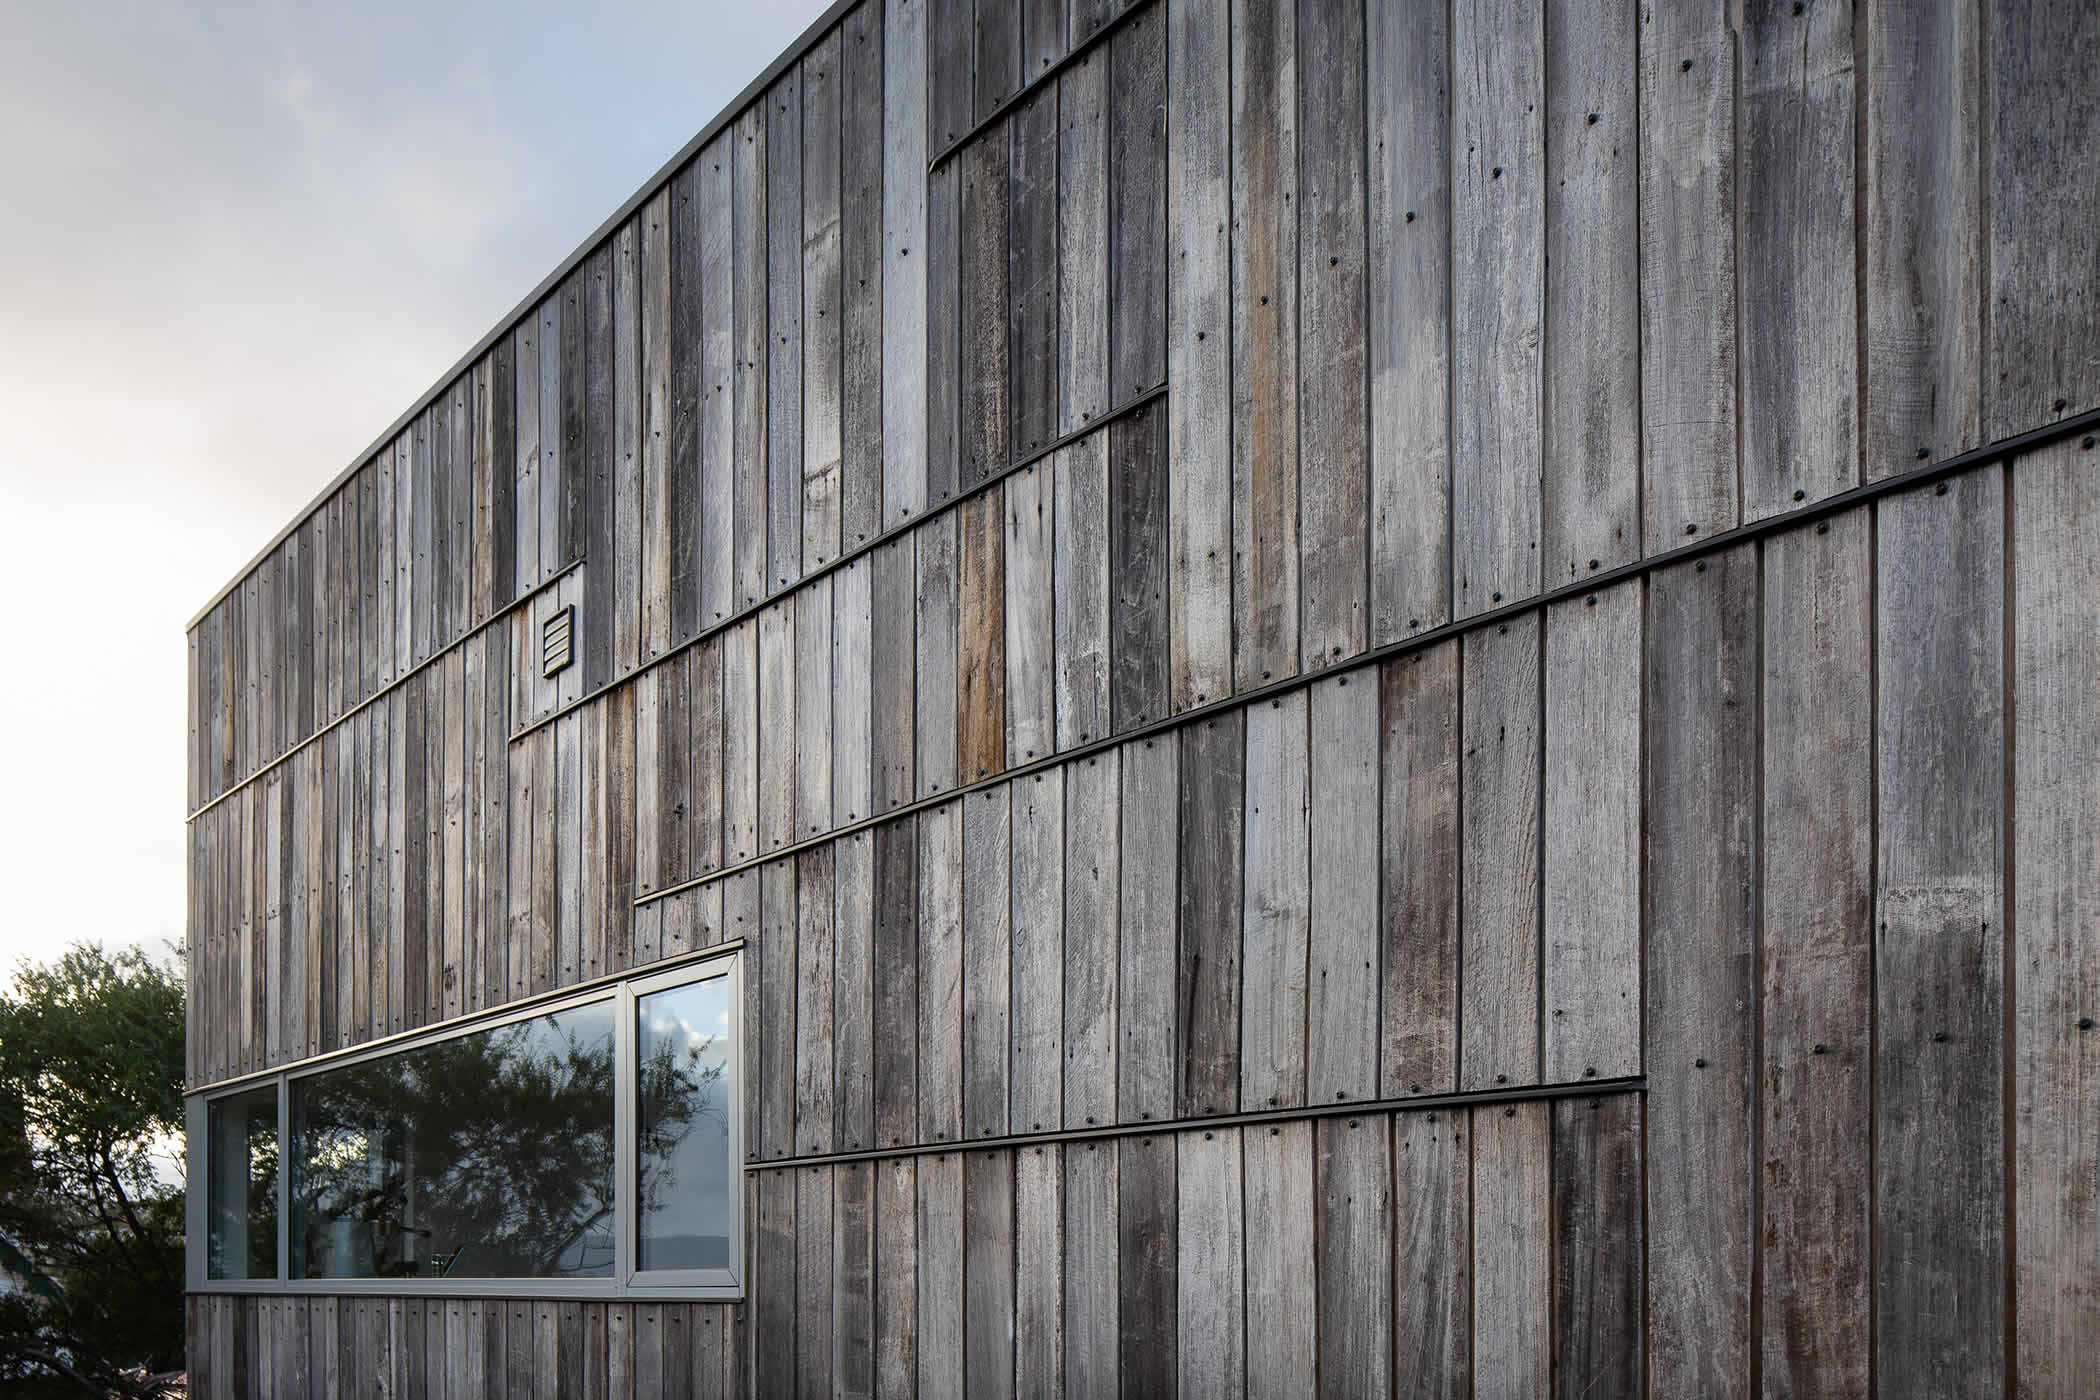 Tiger House, Lindesfarne, Tasmania: Scrap Tas Oak timber fence palings has been salvaged and re-used as external cladding. Weathered timber greys, varied cut down lengths and end capping, create a unique and memorable aesthetic. Photo by Thomas Ryan.